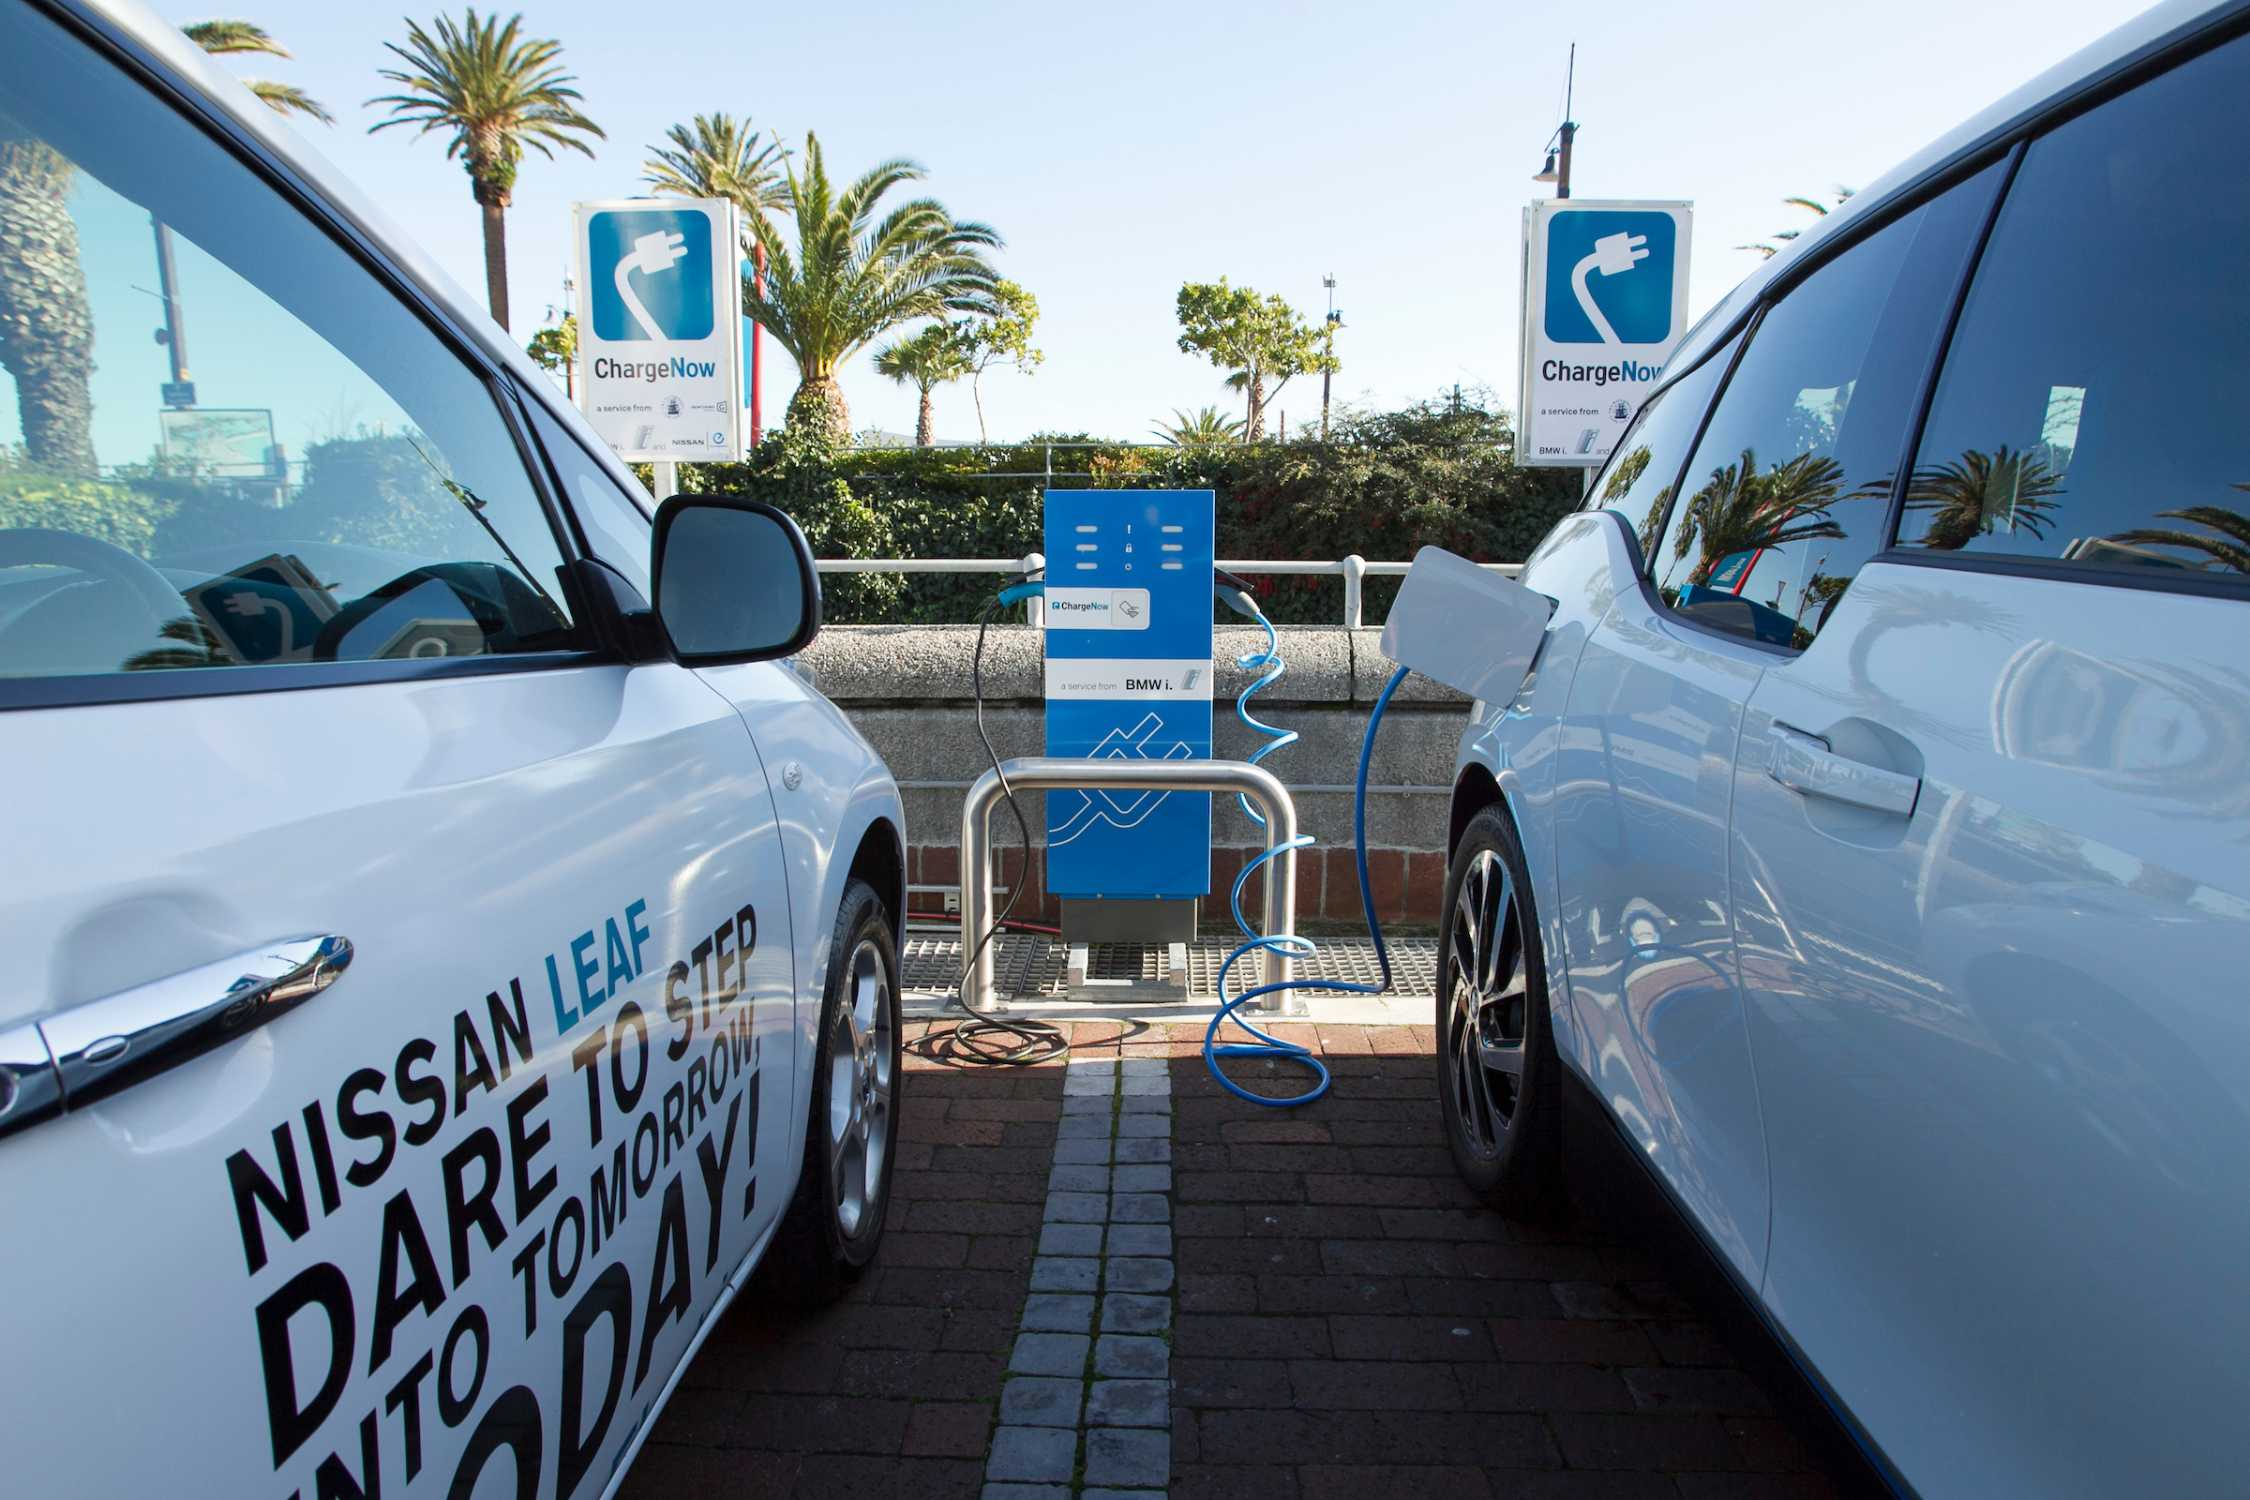 Bmw Group South Africa And Nissan South Africa Roll Out Electric